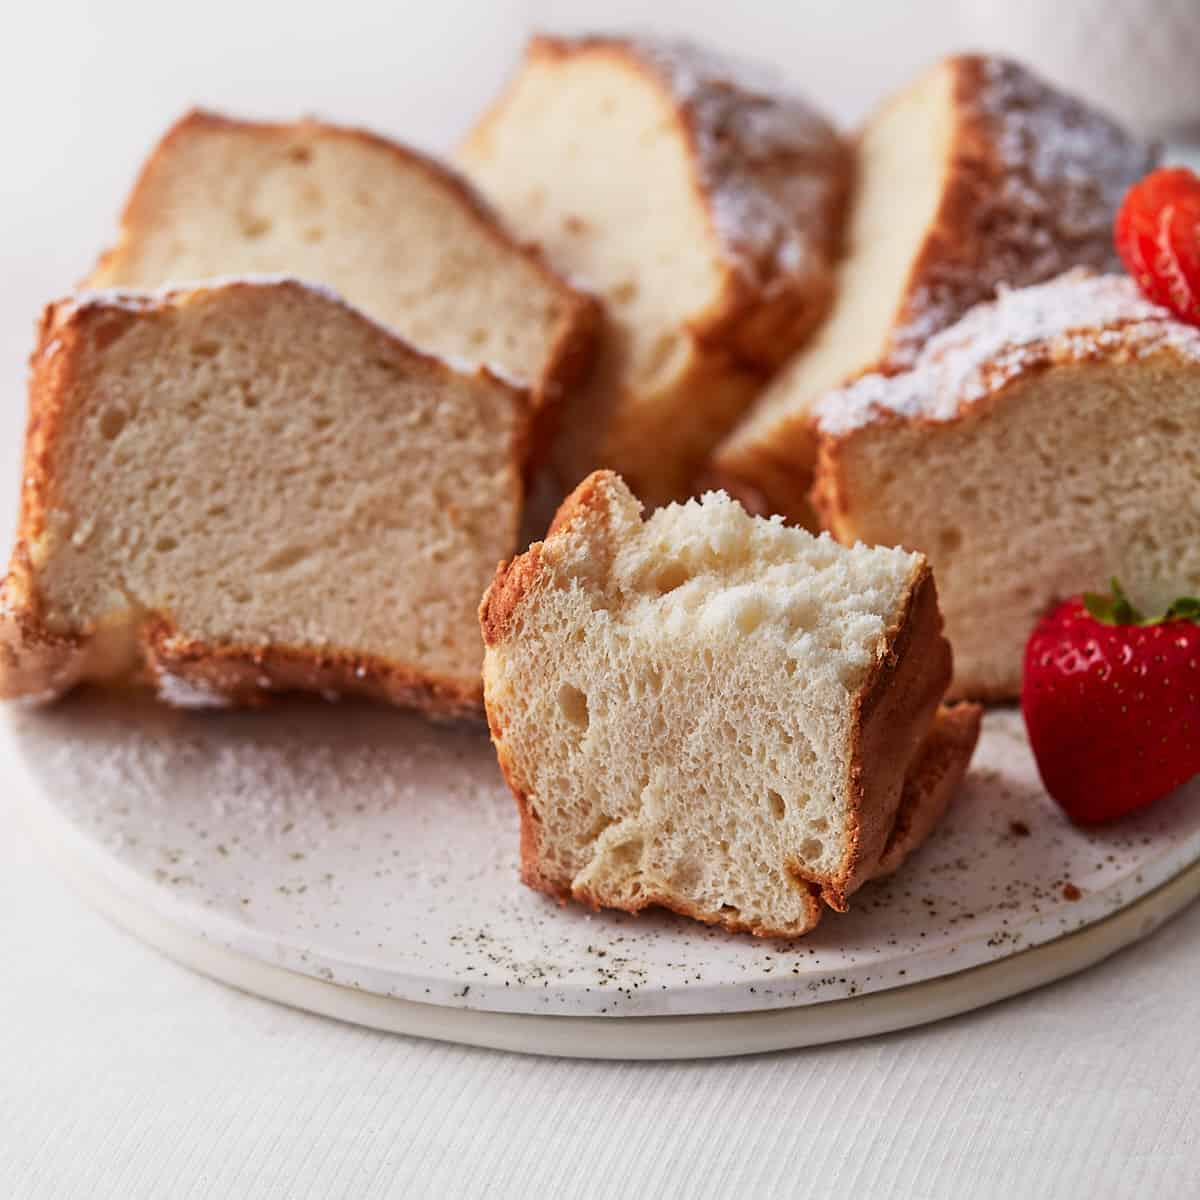 Decorative picture of angel food cake slices on a serving plate